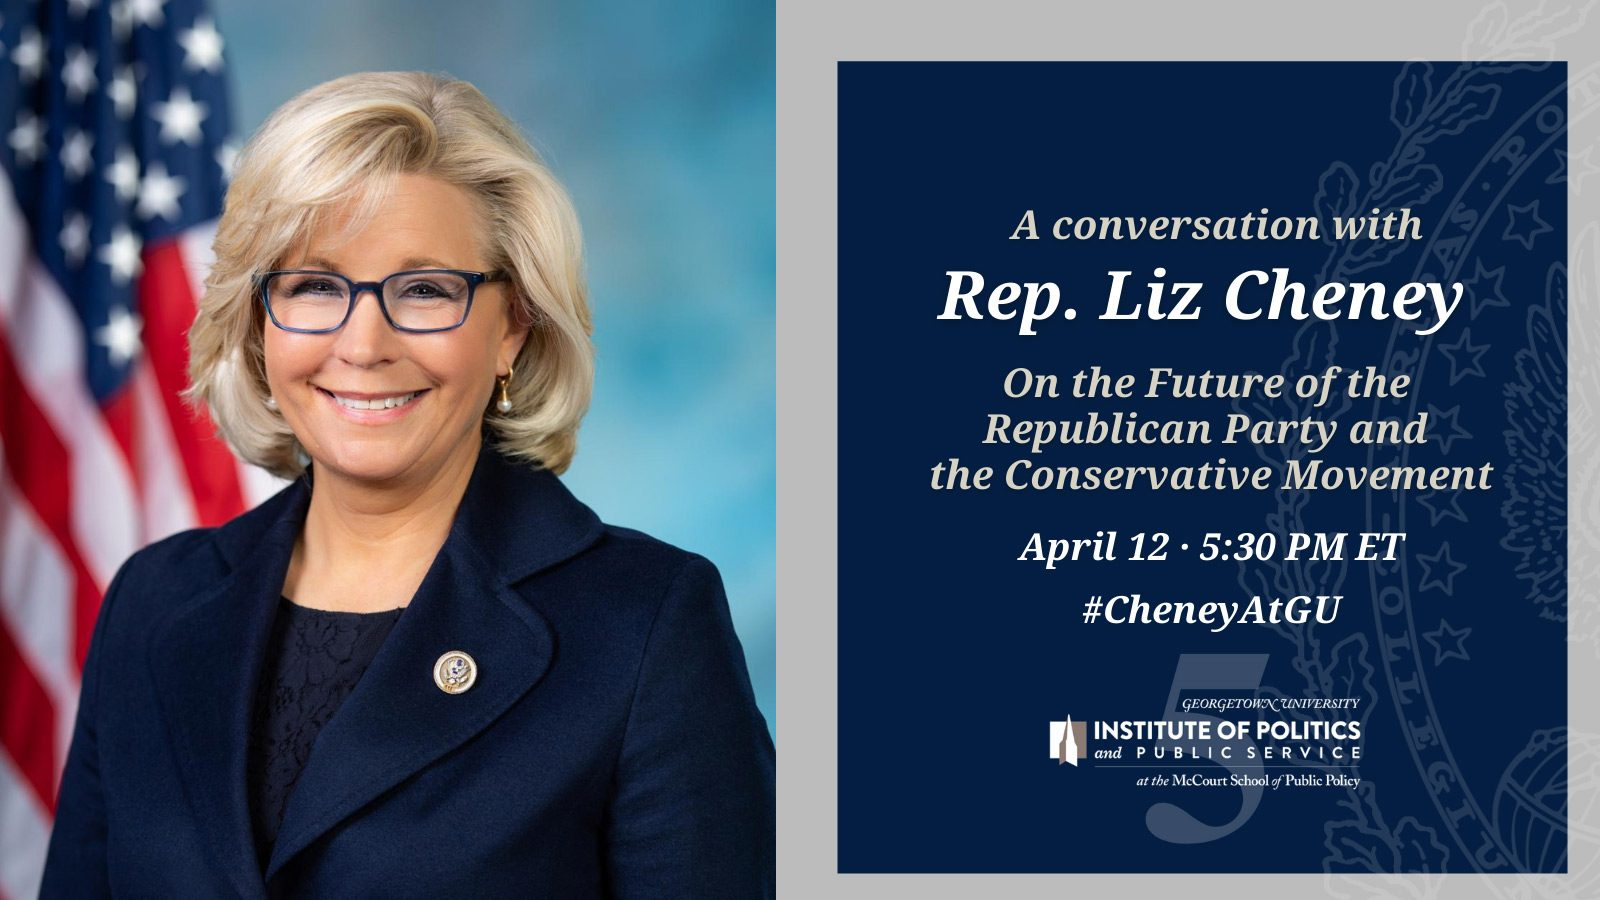 Georgetown Institute of Politics & Public Service at the McCourt School of Public Policy for a conversation with Congresswoman Liz Cheney on Monday, April 12th at 5:30 PM EDT.